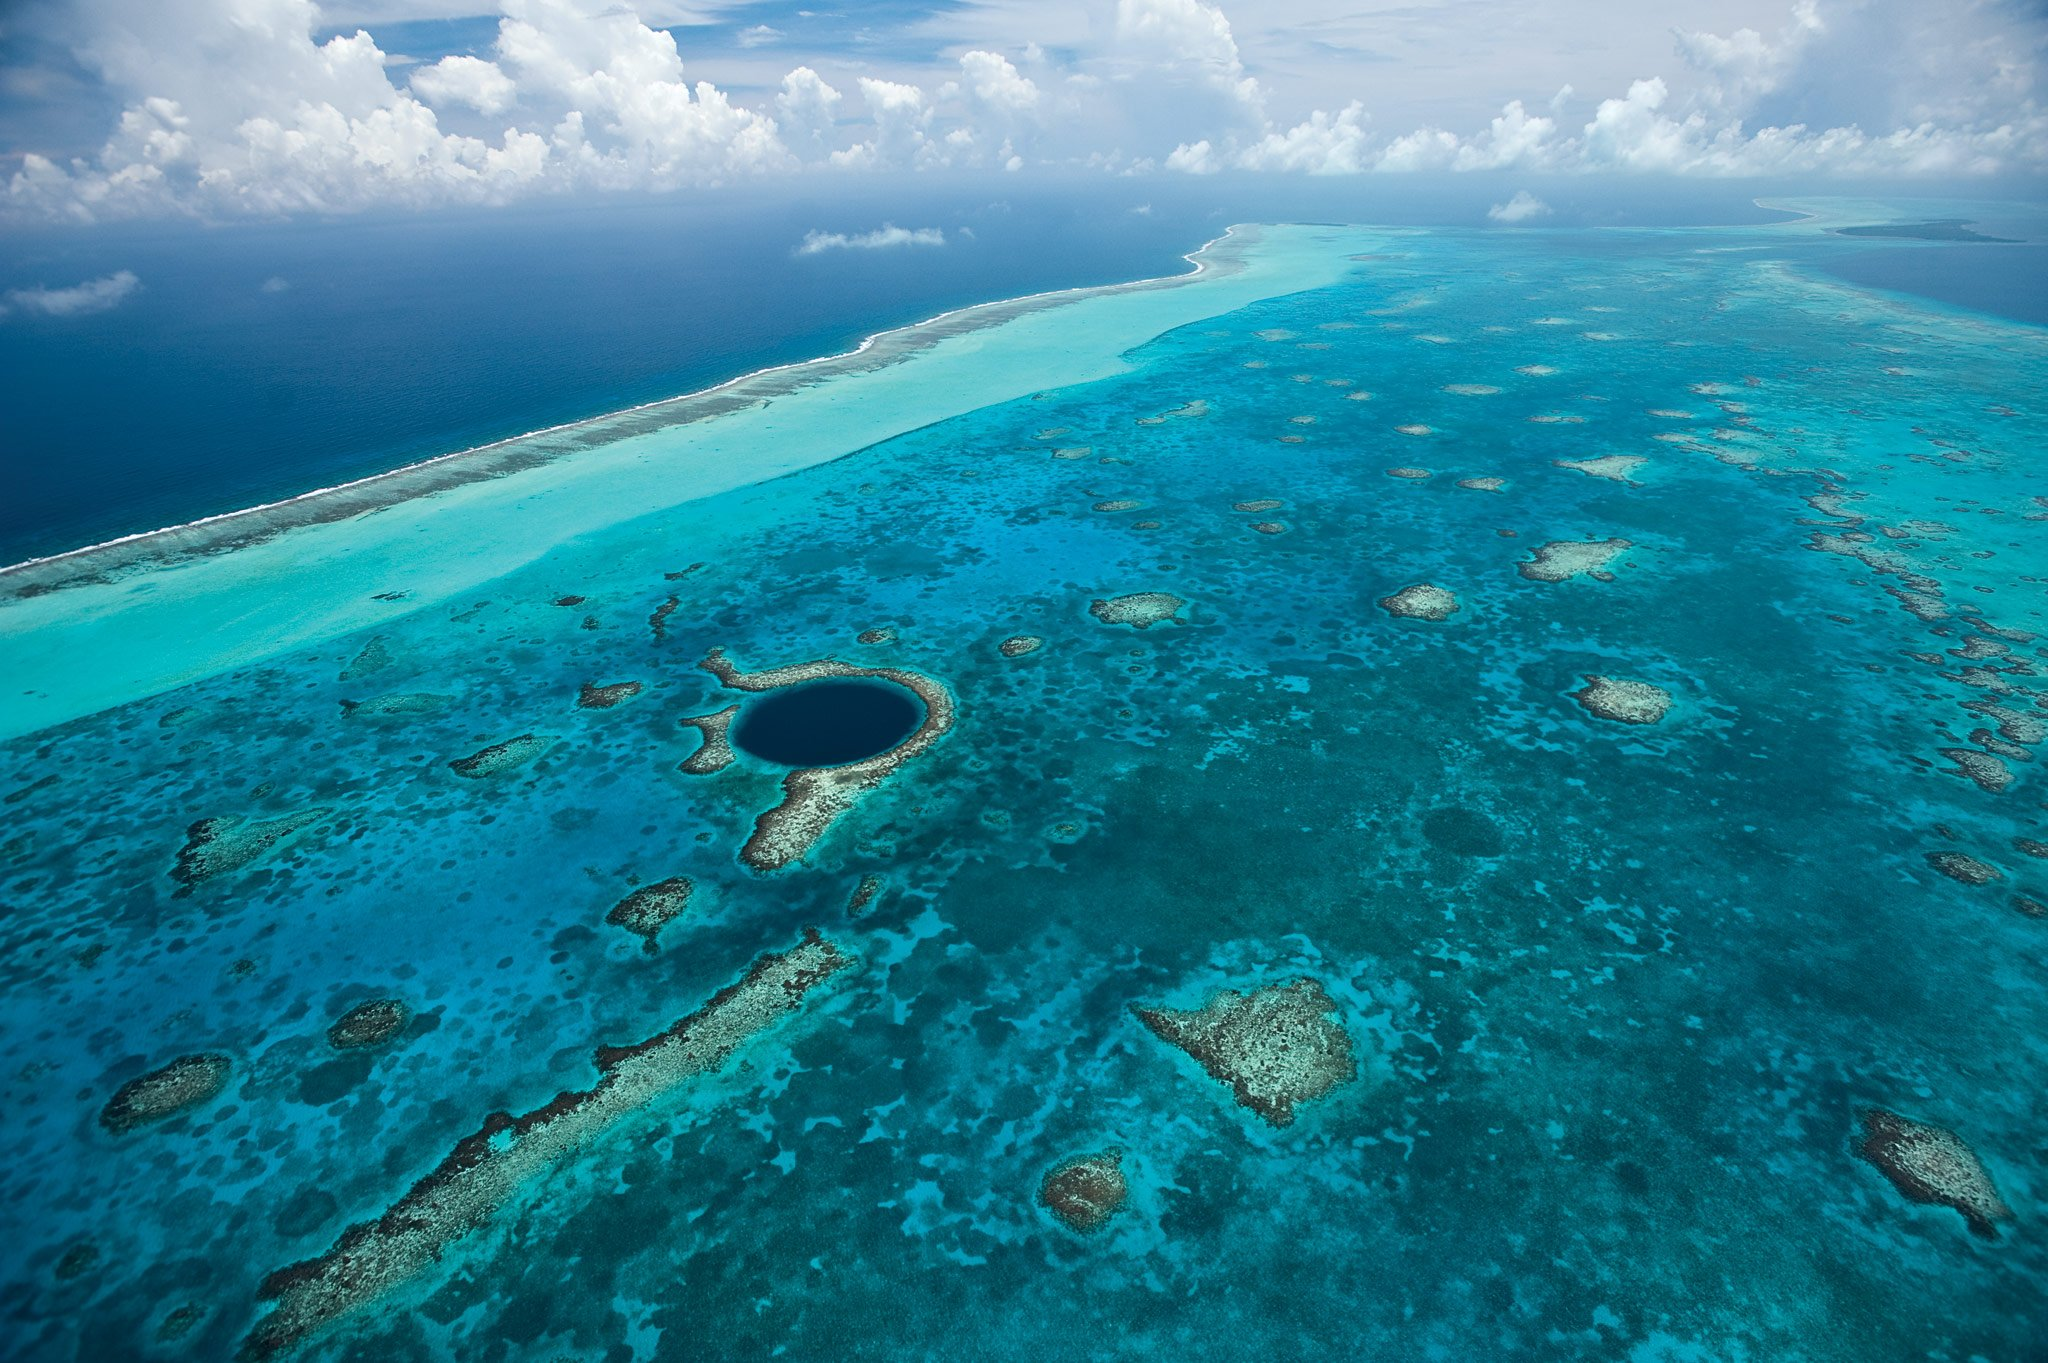 Belize Surf and Turf vacations gives you the chance to experience the Great Barrier Reef & Blue Hole!